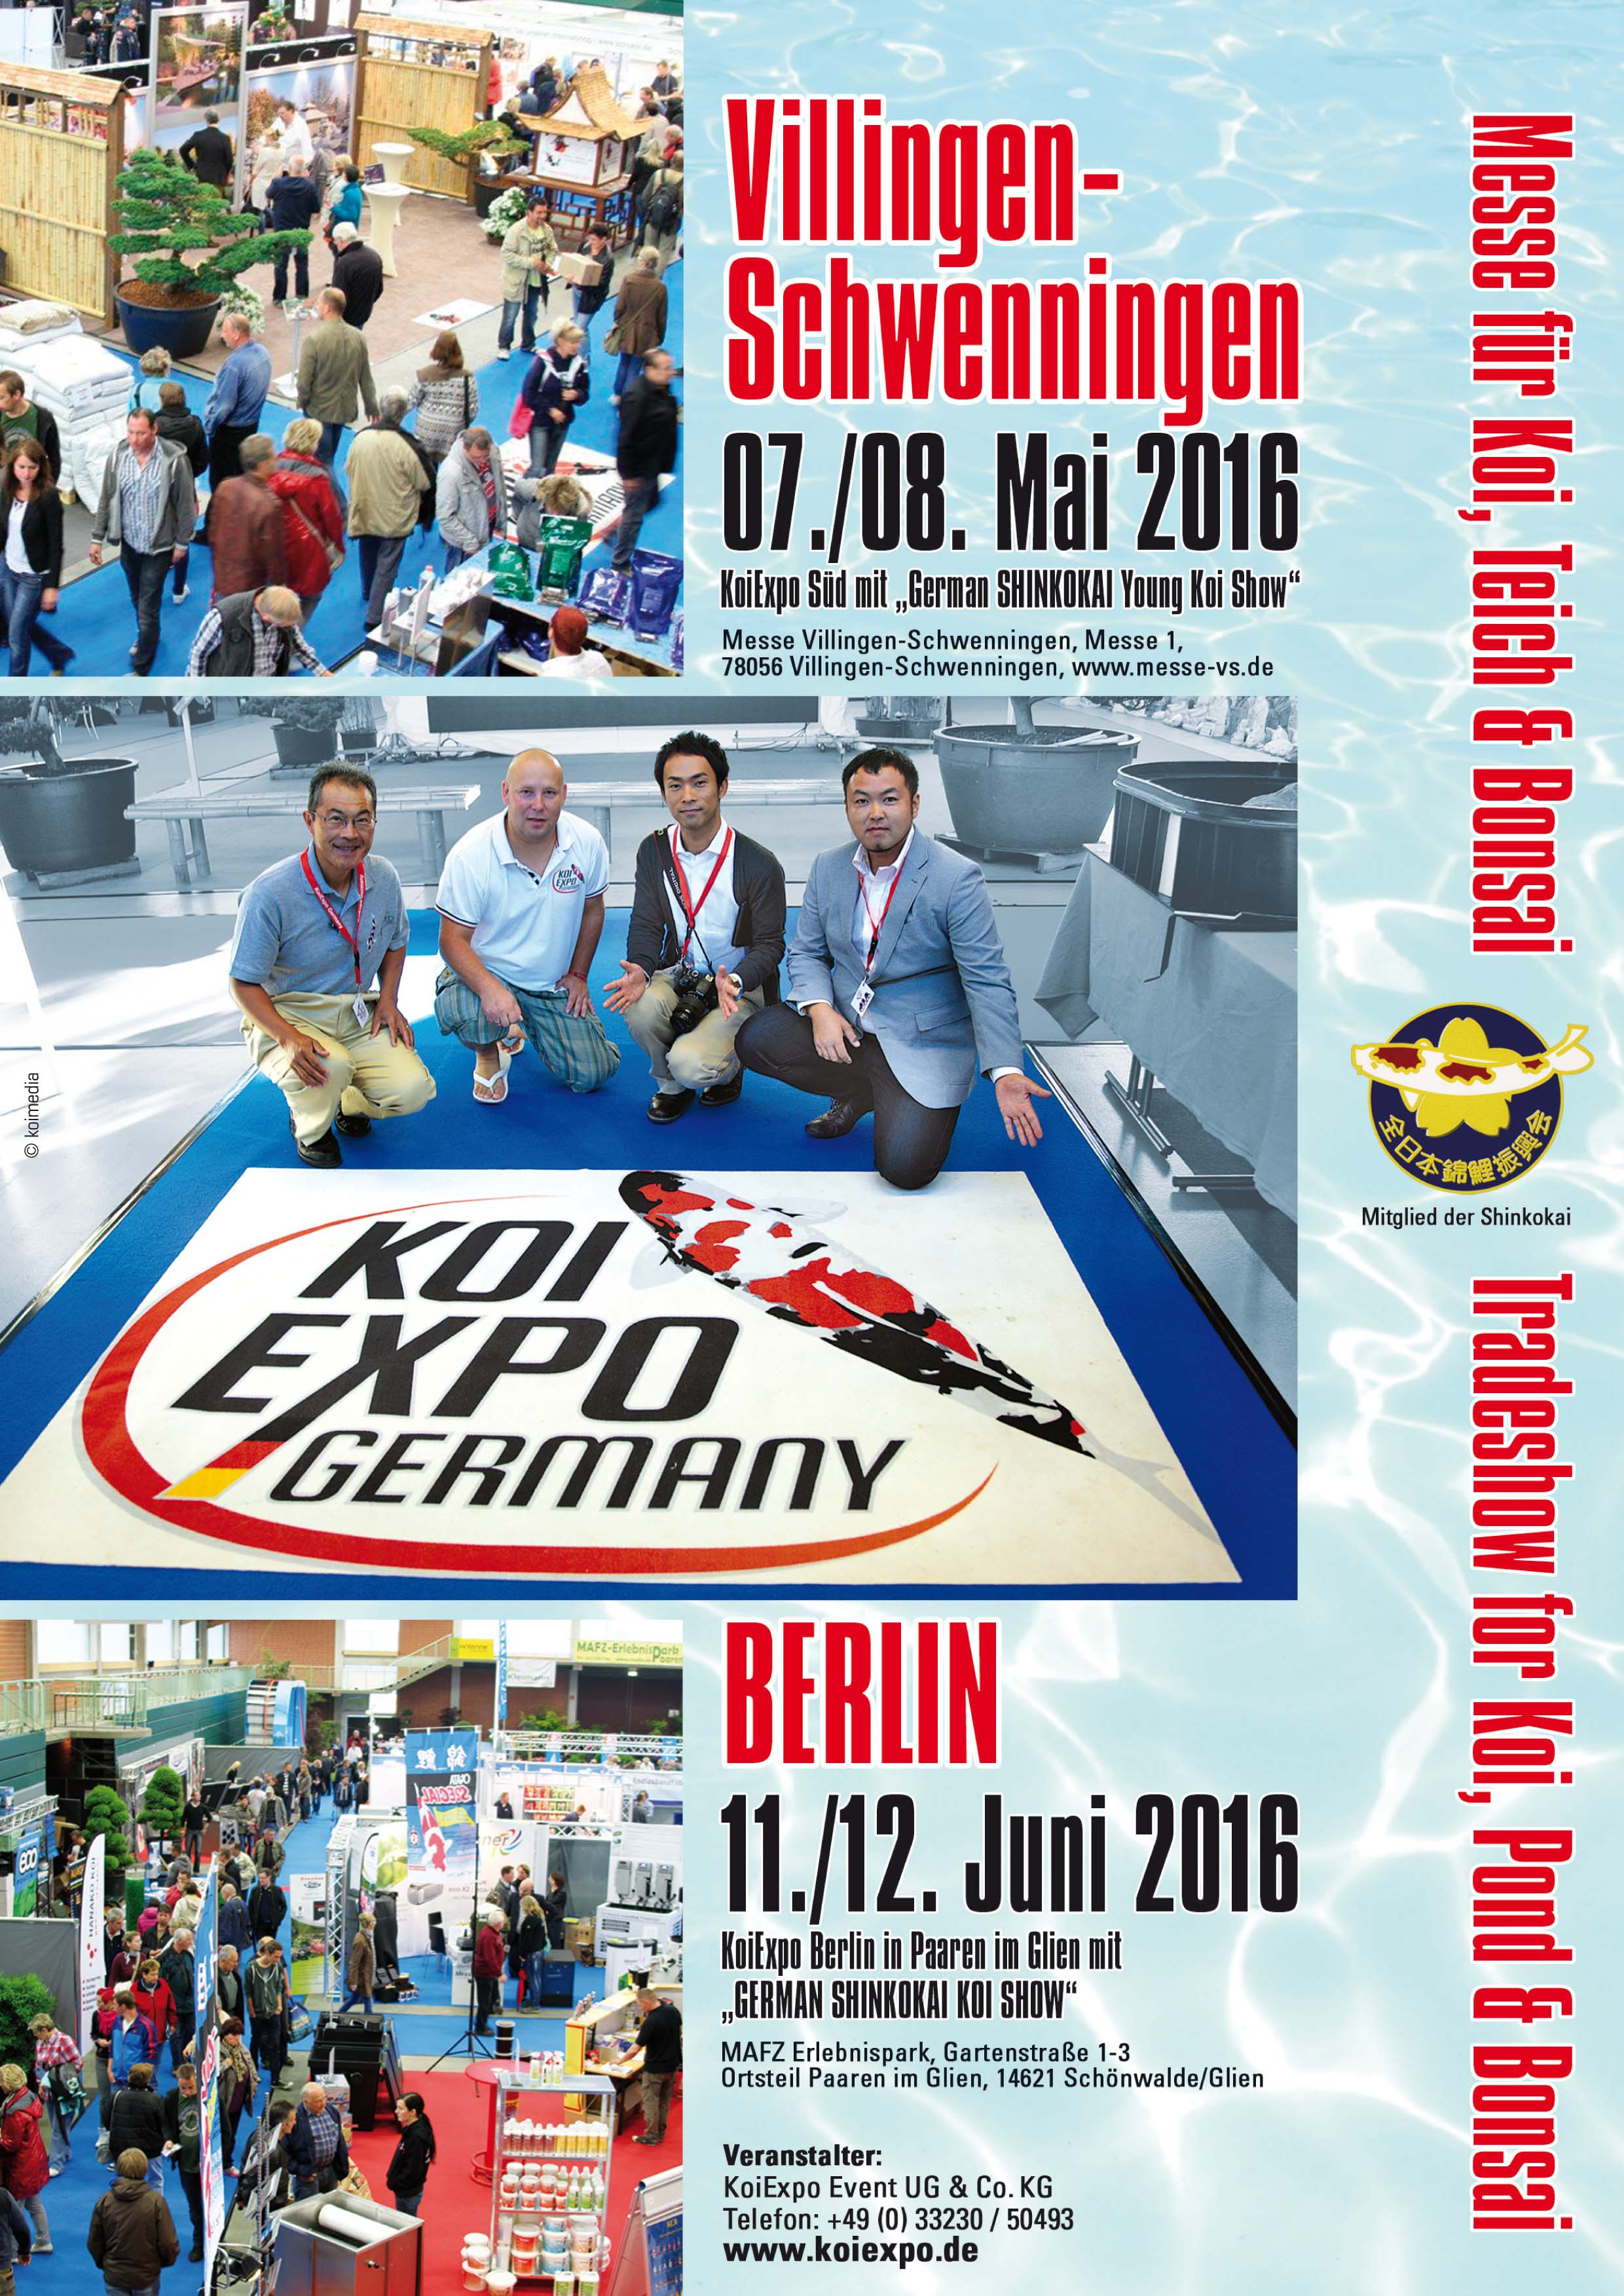 Germany Shinkokai Young KOI Show 2016